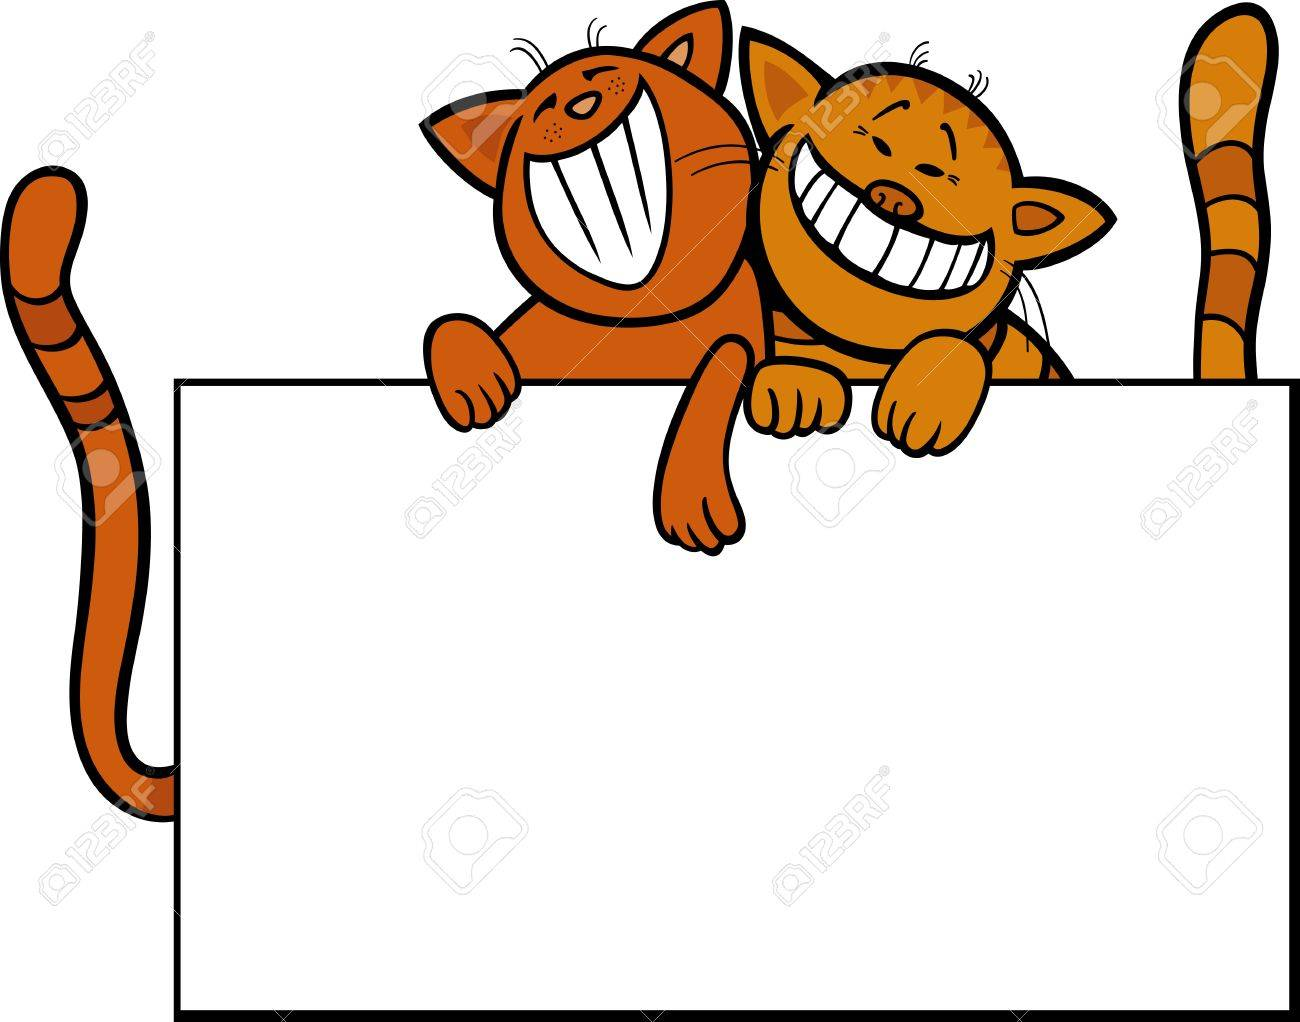 1300x1022 Cartoon Illustration Of Two Funny Cats With Blank Card Or Board